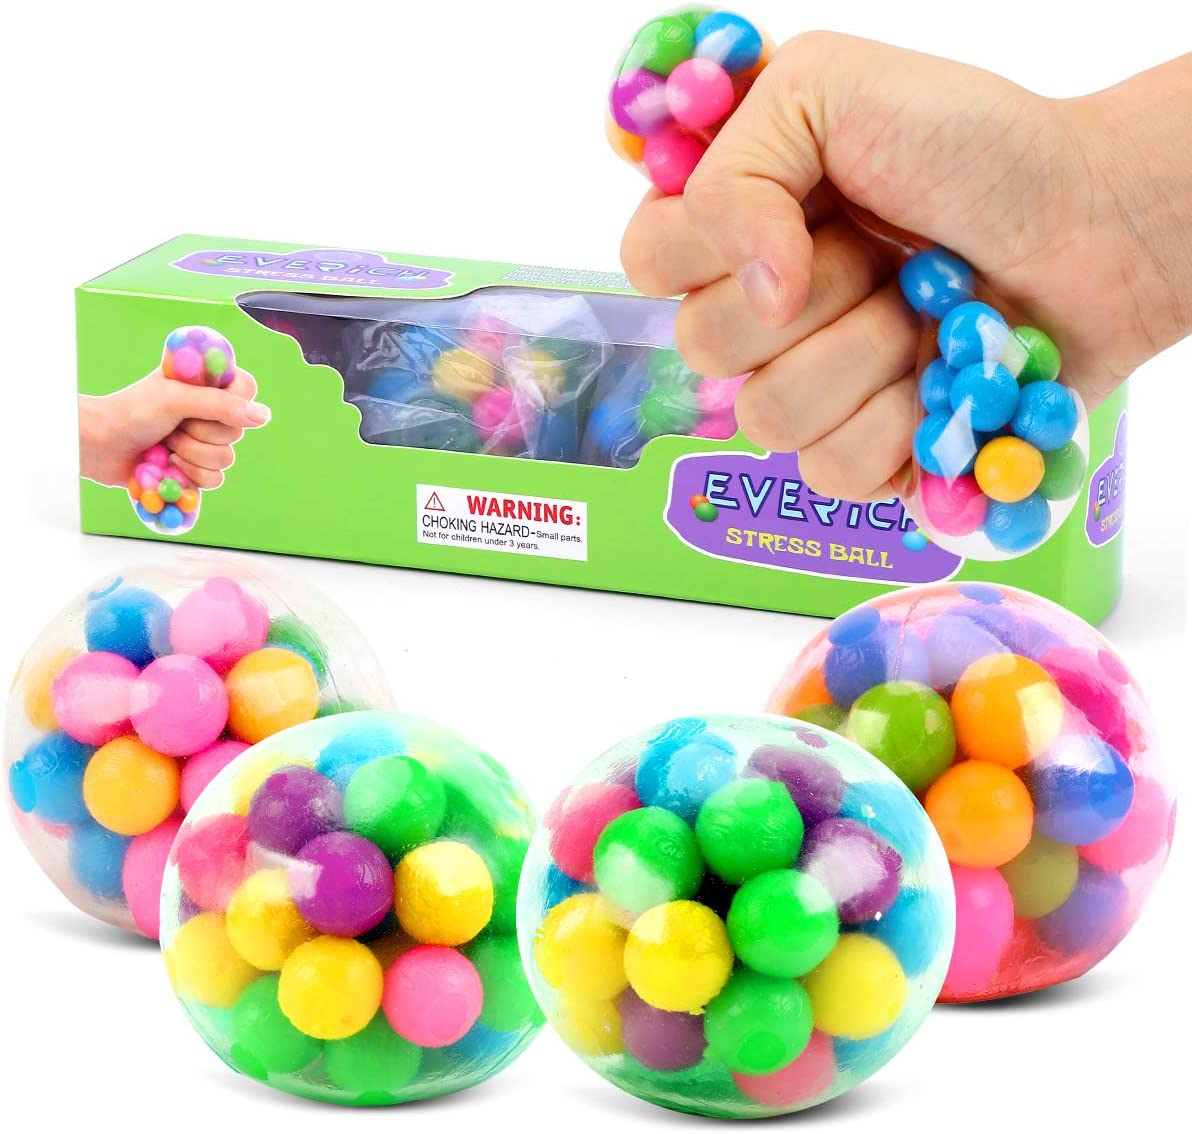 Fidget Sensory Toys for ADHD Autistic Children Squeeze Ball Toy Stress Balls for Kids Hand Exercise Rainbow Stress Ball Stress Relief Balls for Adults Teens Party Favors